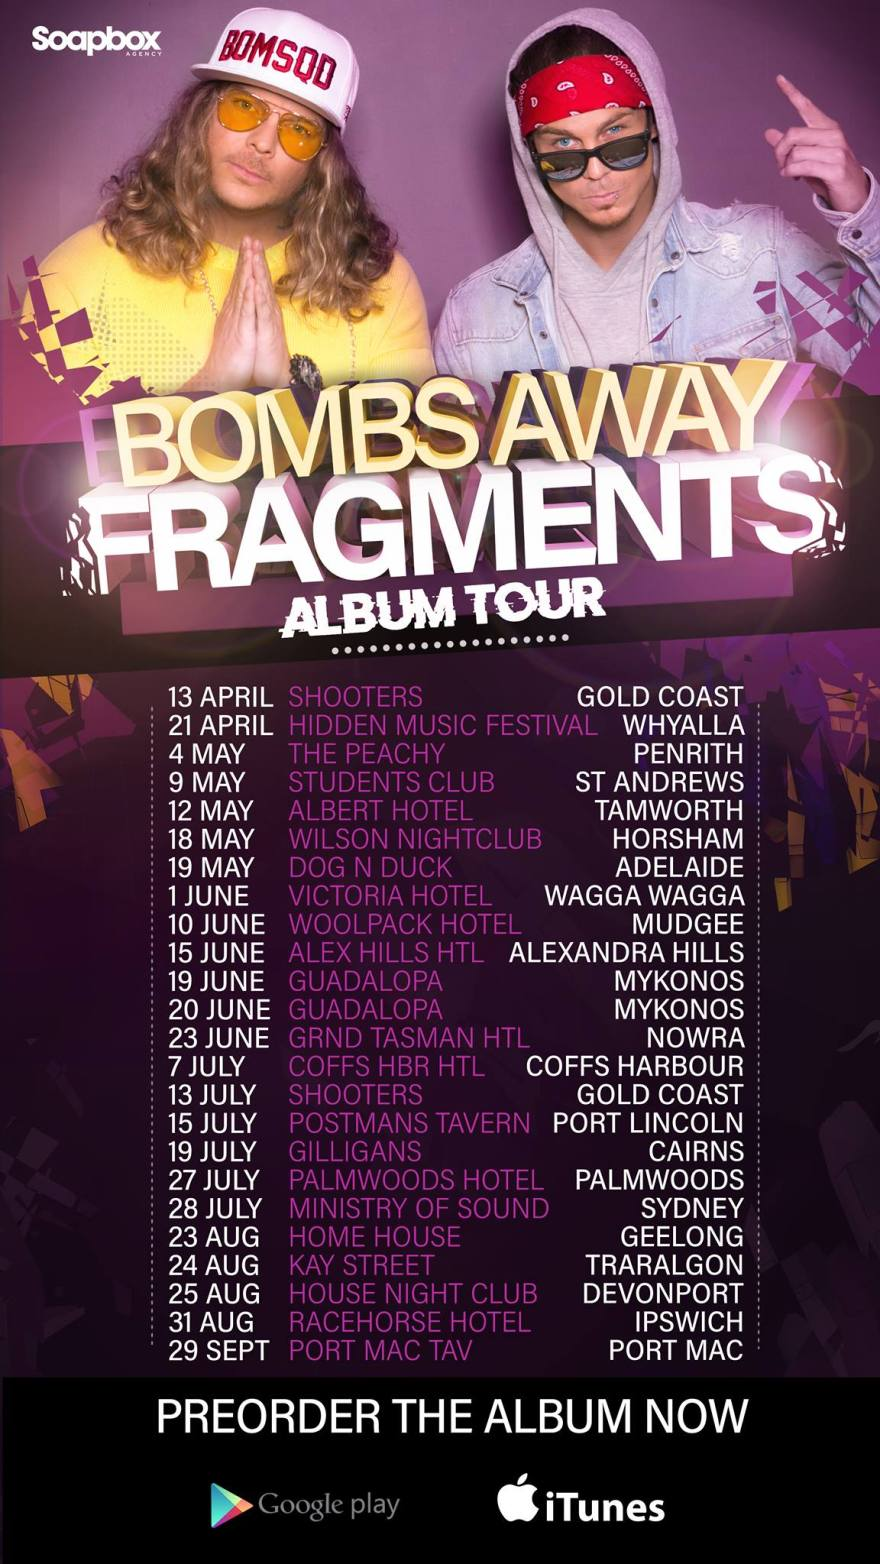 Bombs Away Fragments 2018 Tour